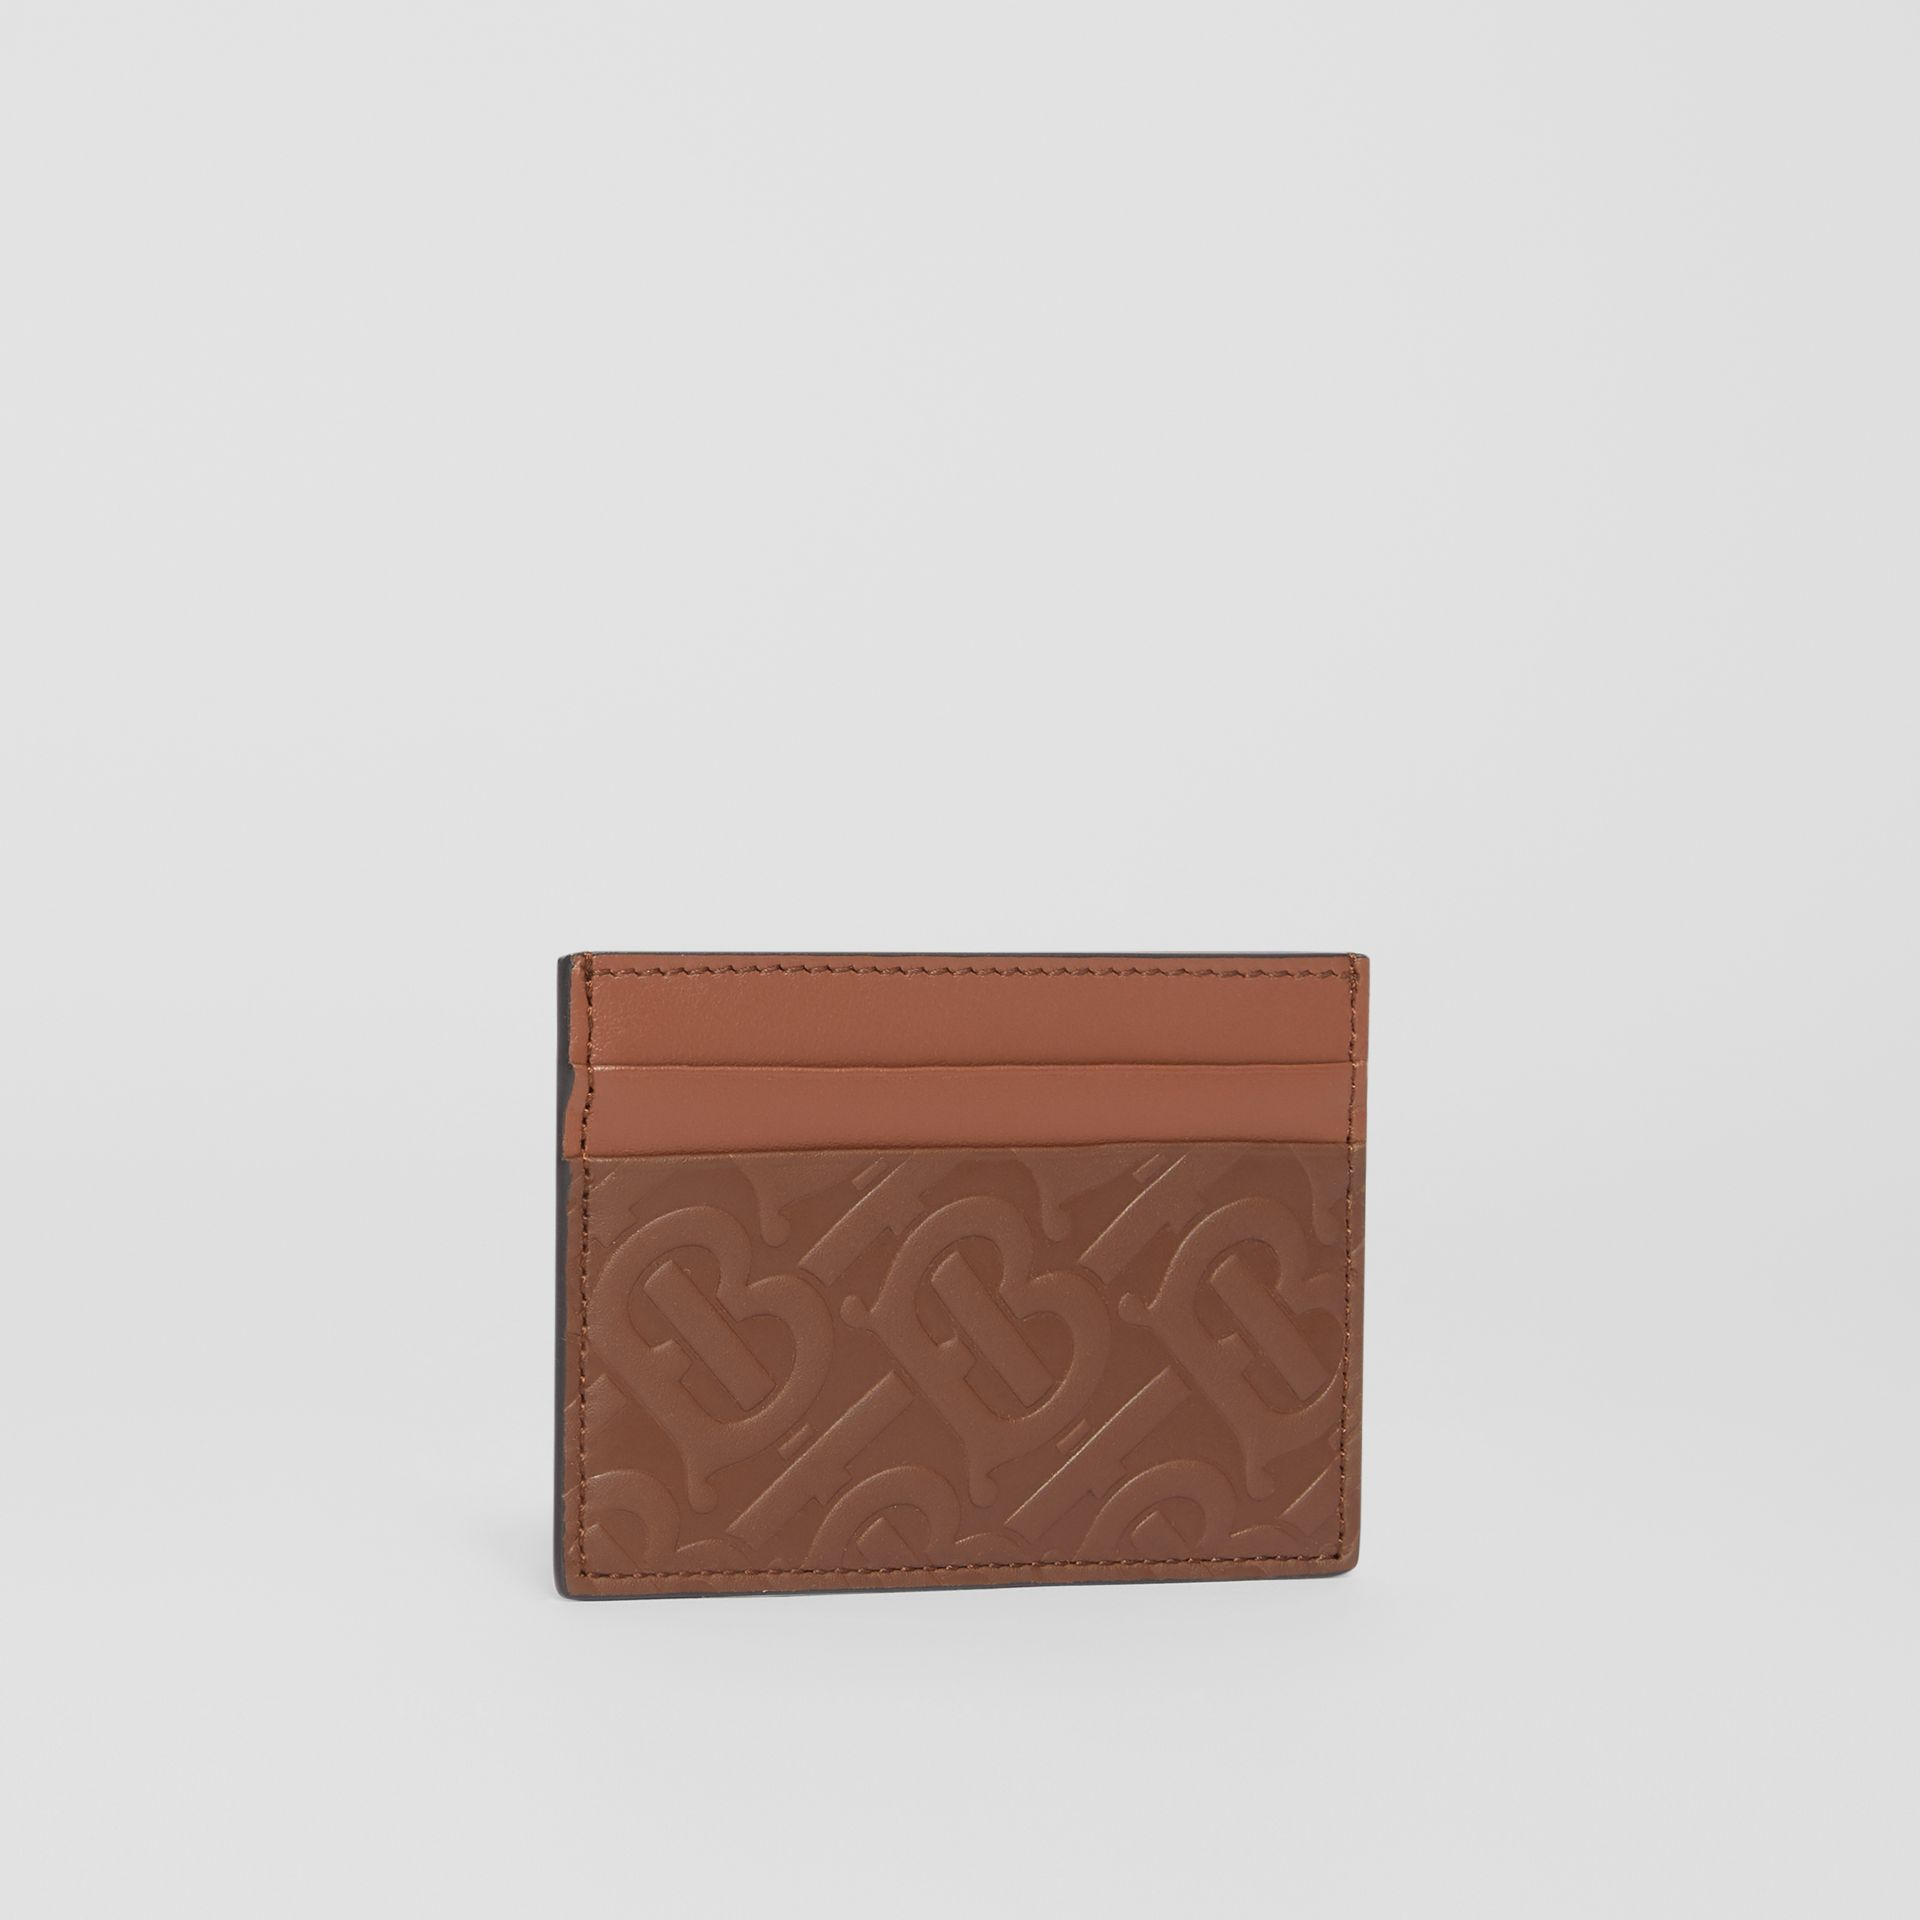 Monogram Leather Card Case in Dark Tan - Men | Burberry Canada - gallery image 3